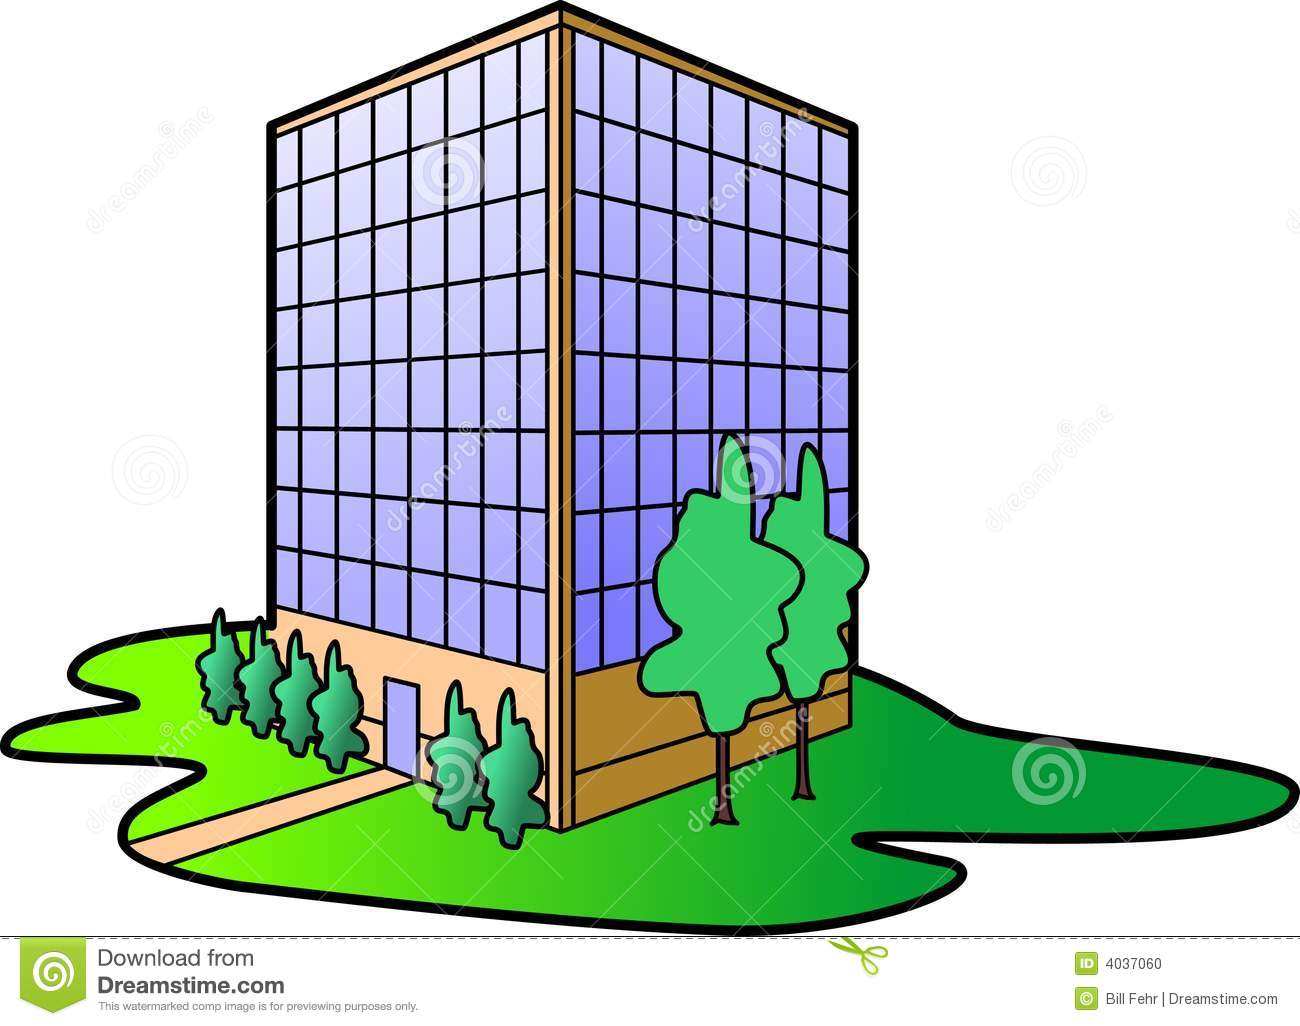 office building stock vector illustration of dwelling 4037060 rh dreamstime com office building clipart black and white office building clipart black and white